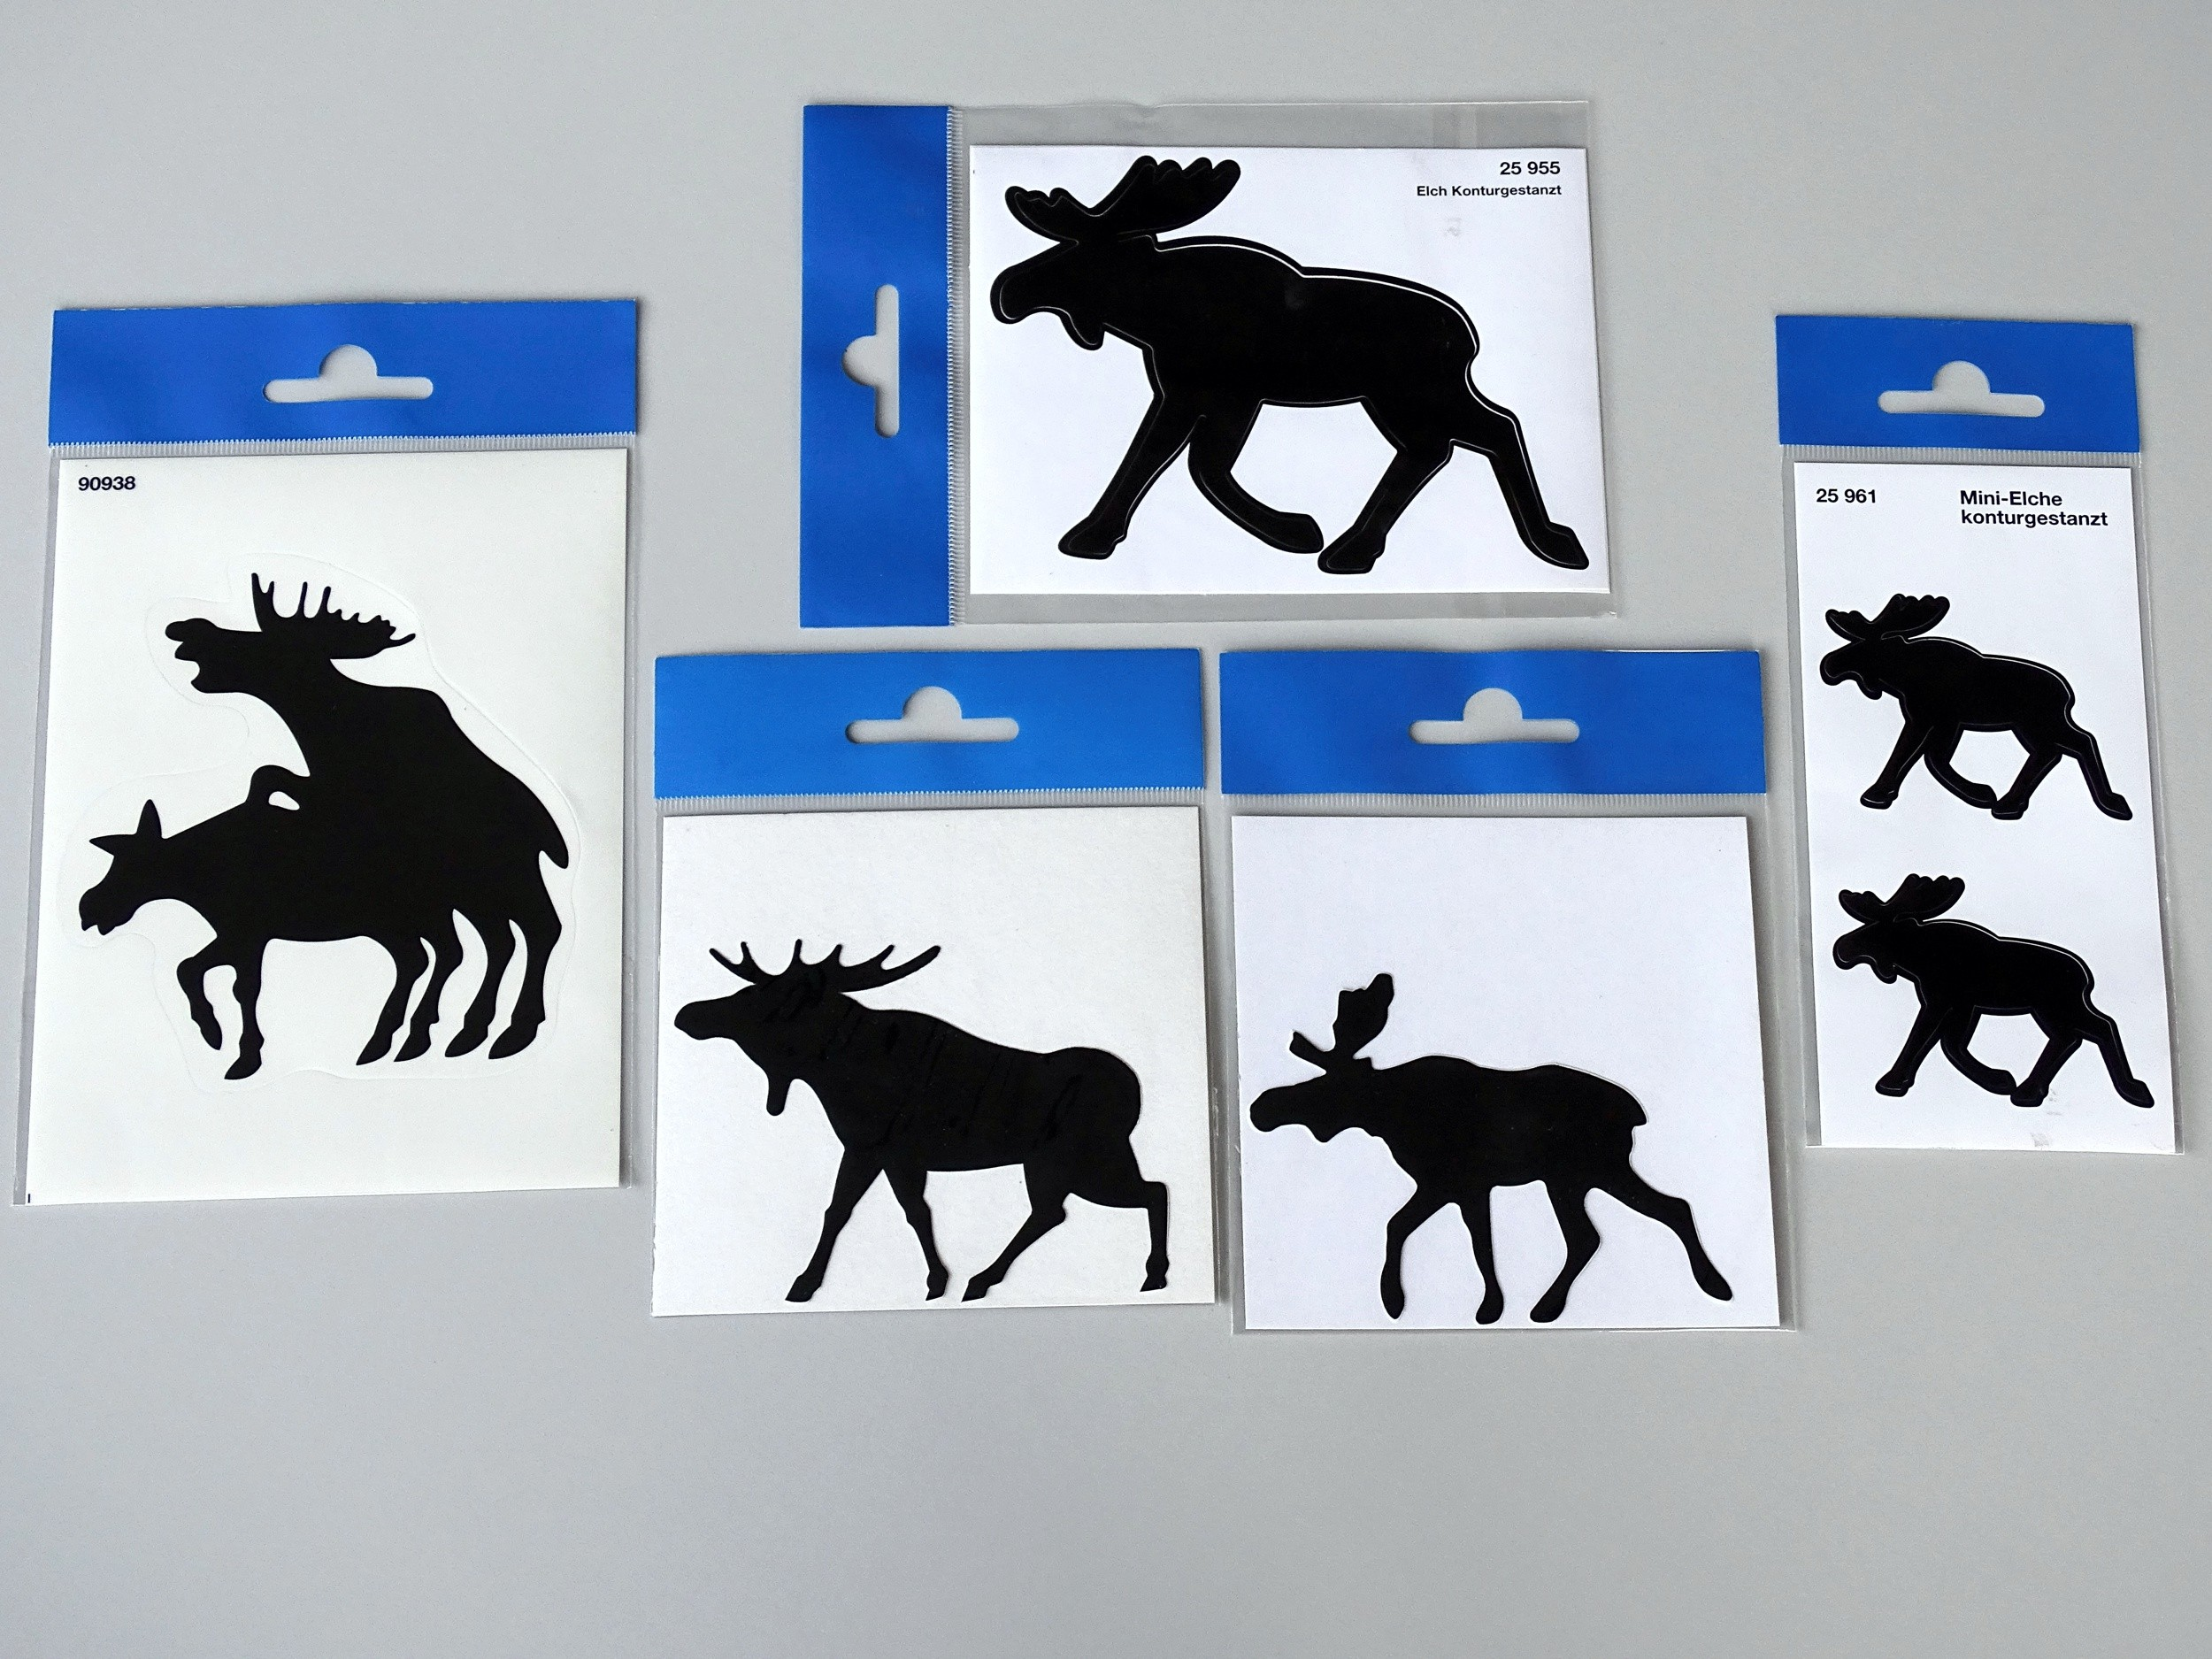 Sticker moose dimension 60 x 80 mm – Bild 2